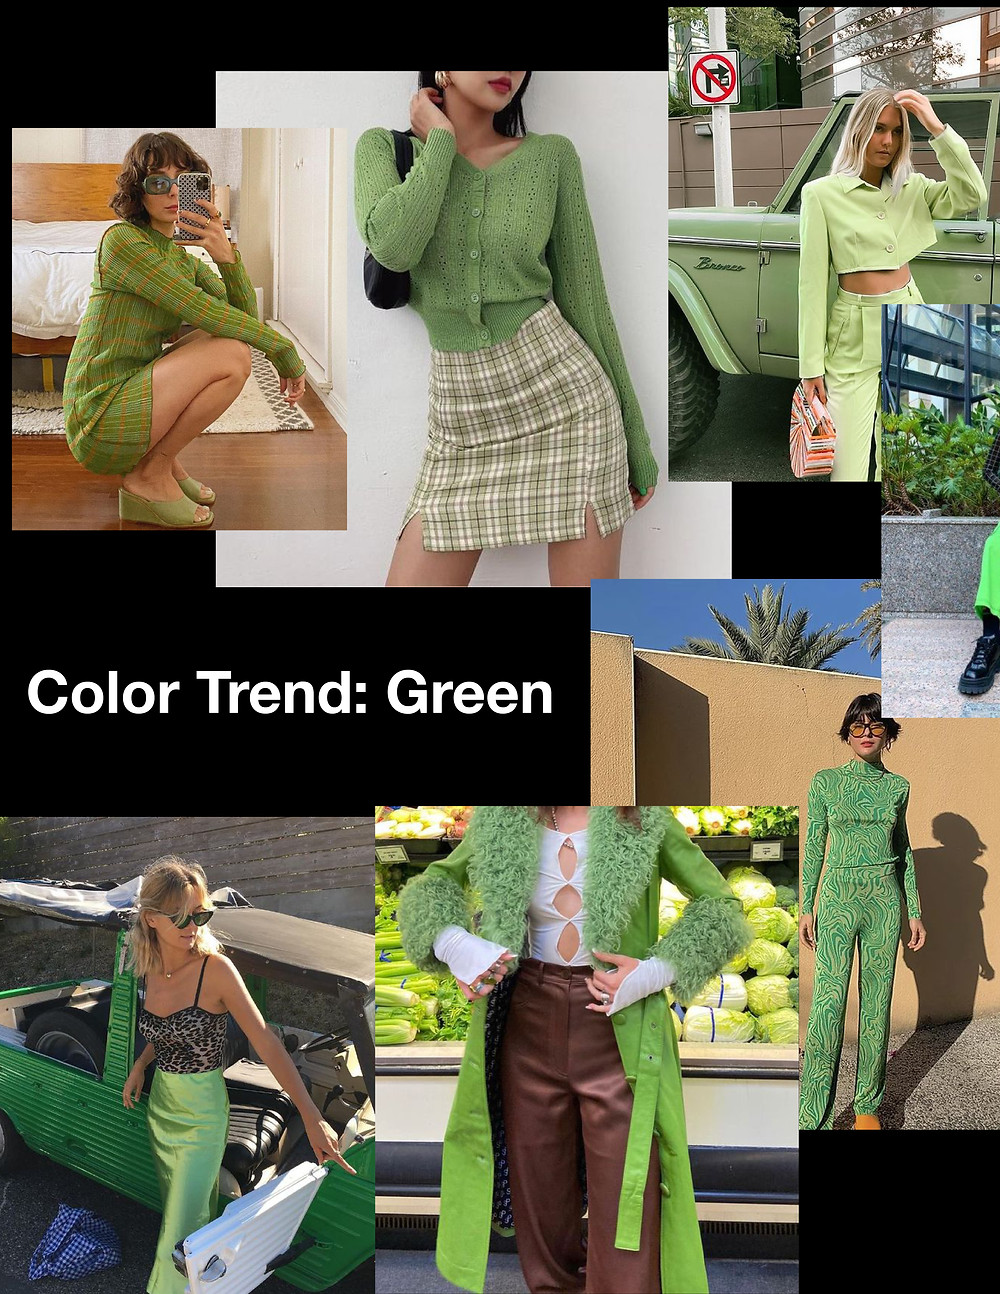 fashion trends for summer 2021, green outfits, shopping guide, stylist advice